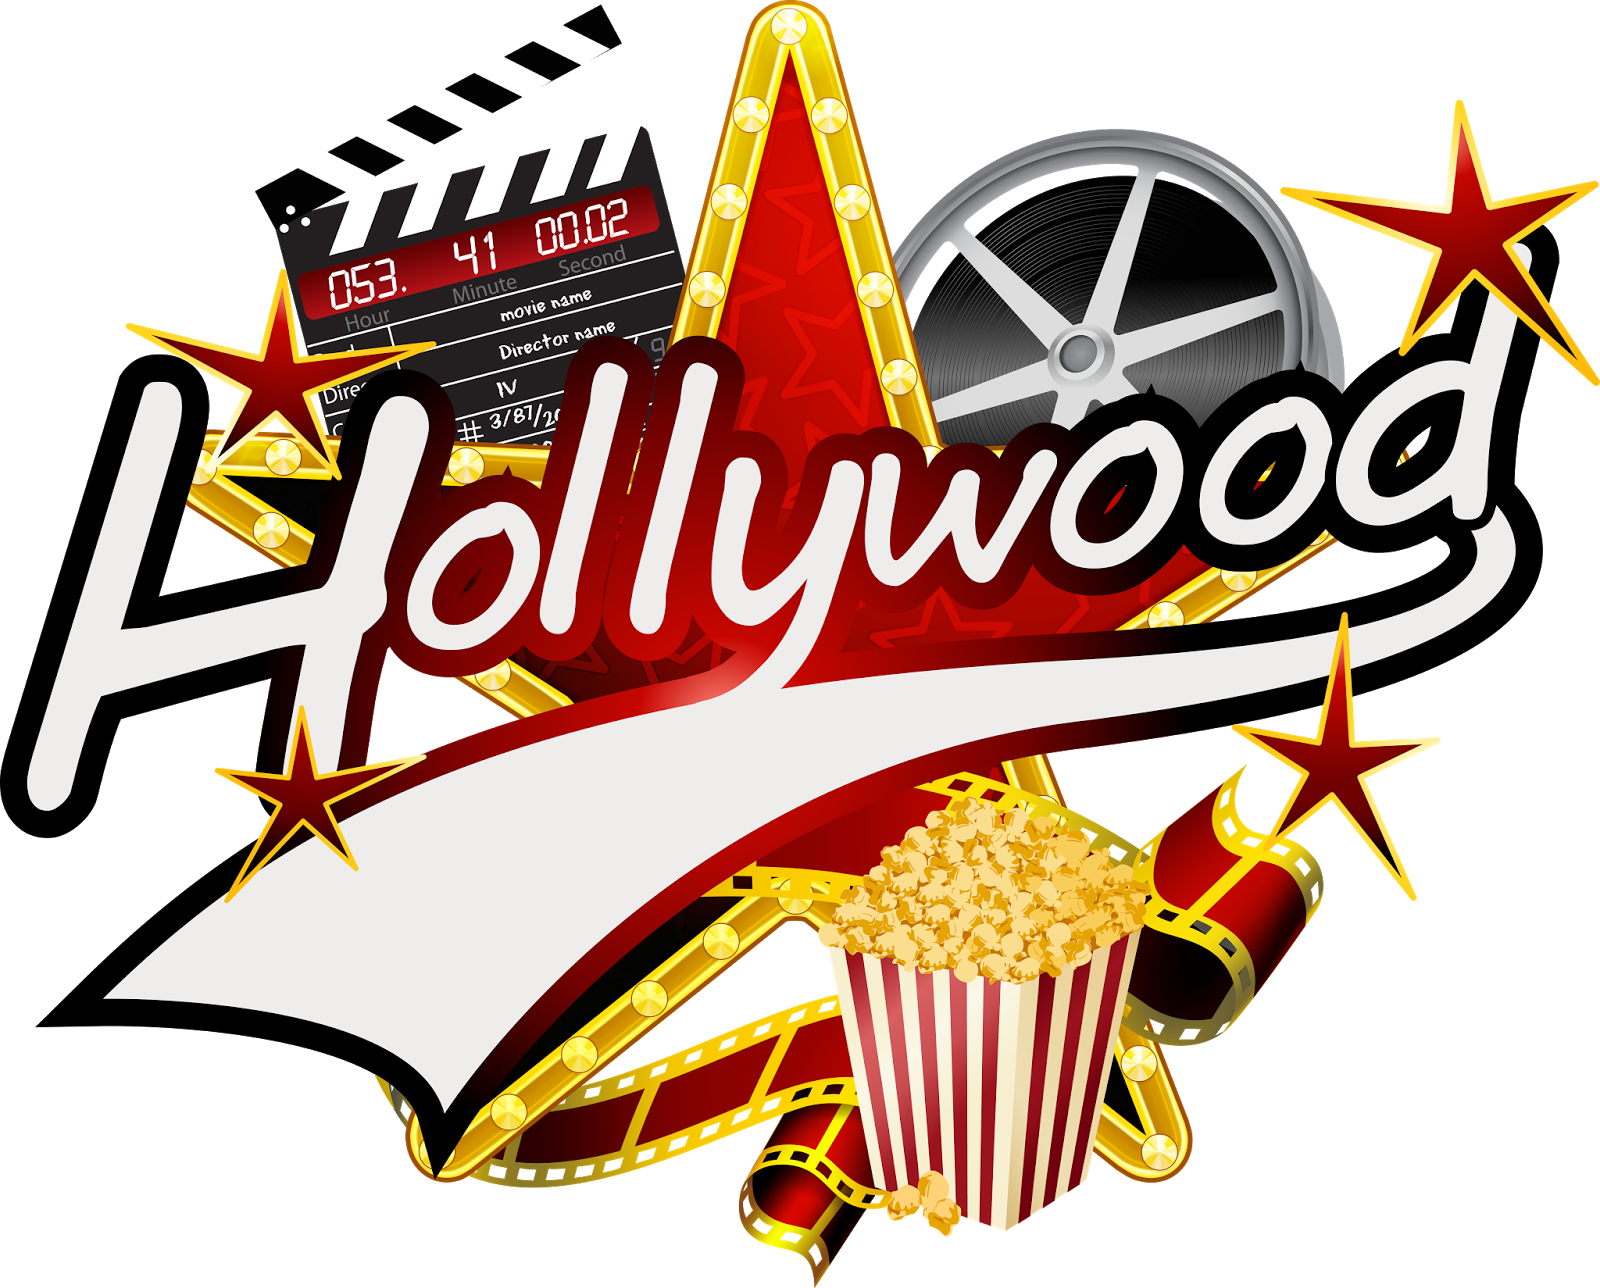 Hollywood clipart movie scene. What do you know